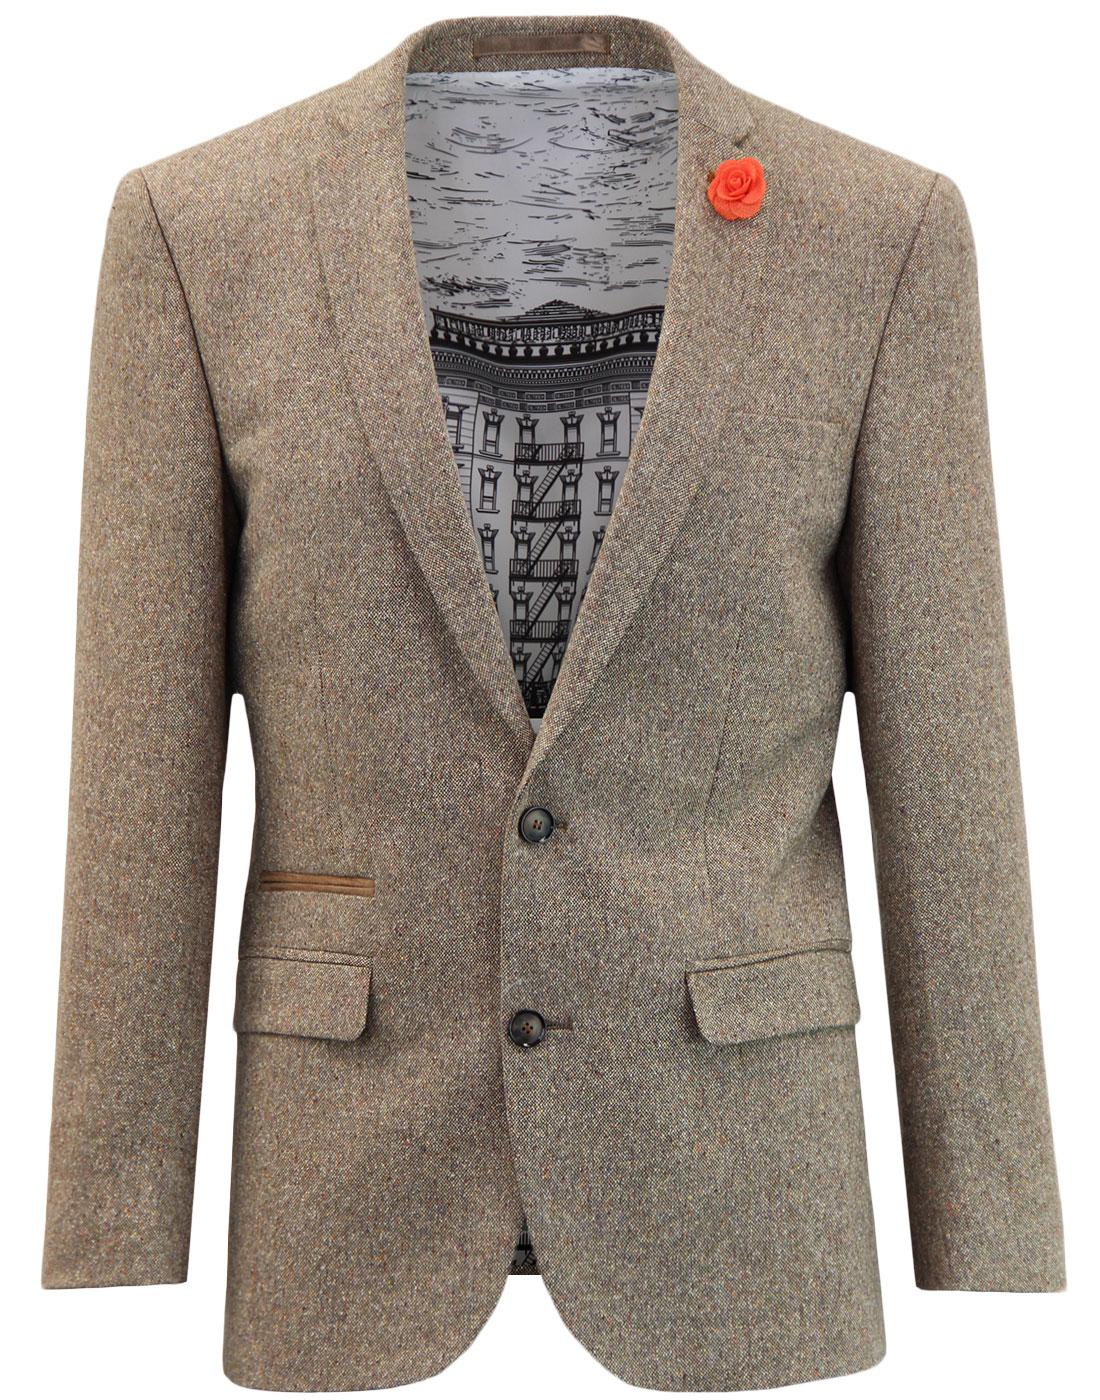 60s Mod Donegal Fleck 2 Button Suit Jacket BISCUIT